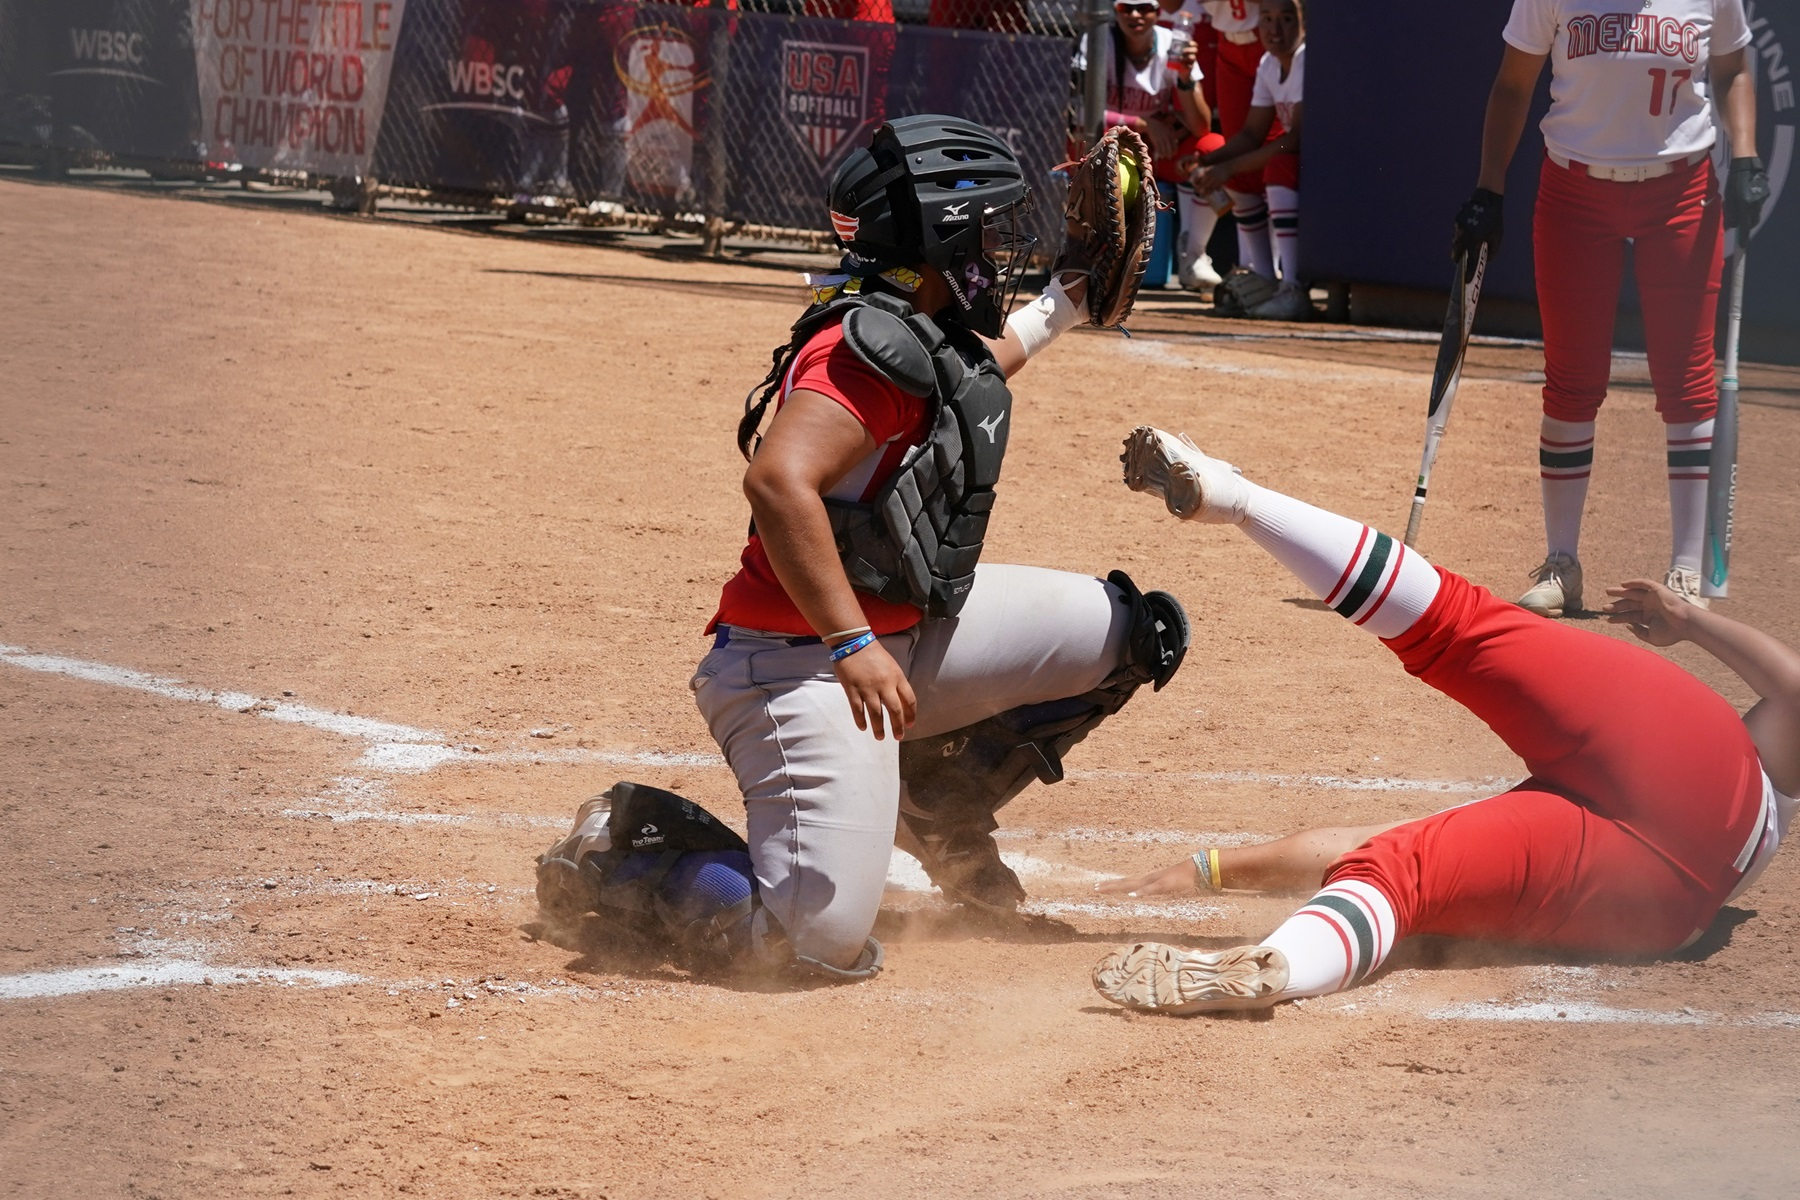 She was tagged for the out at home plate